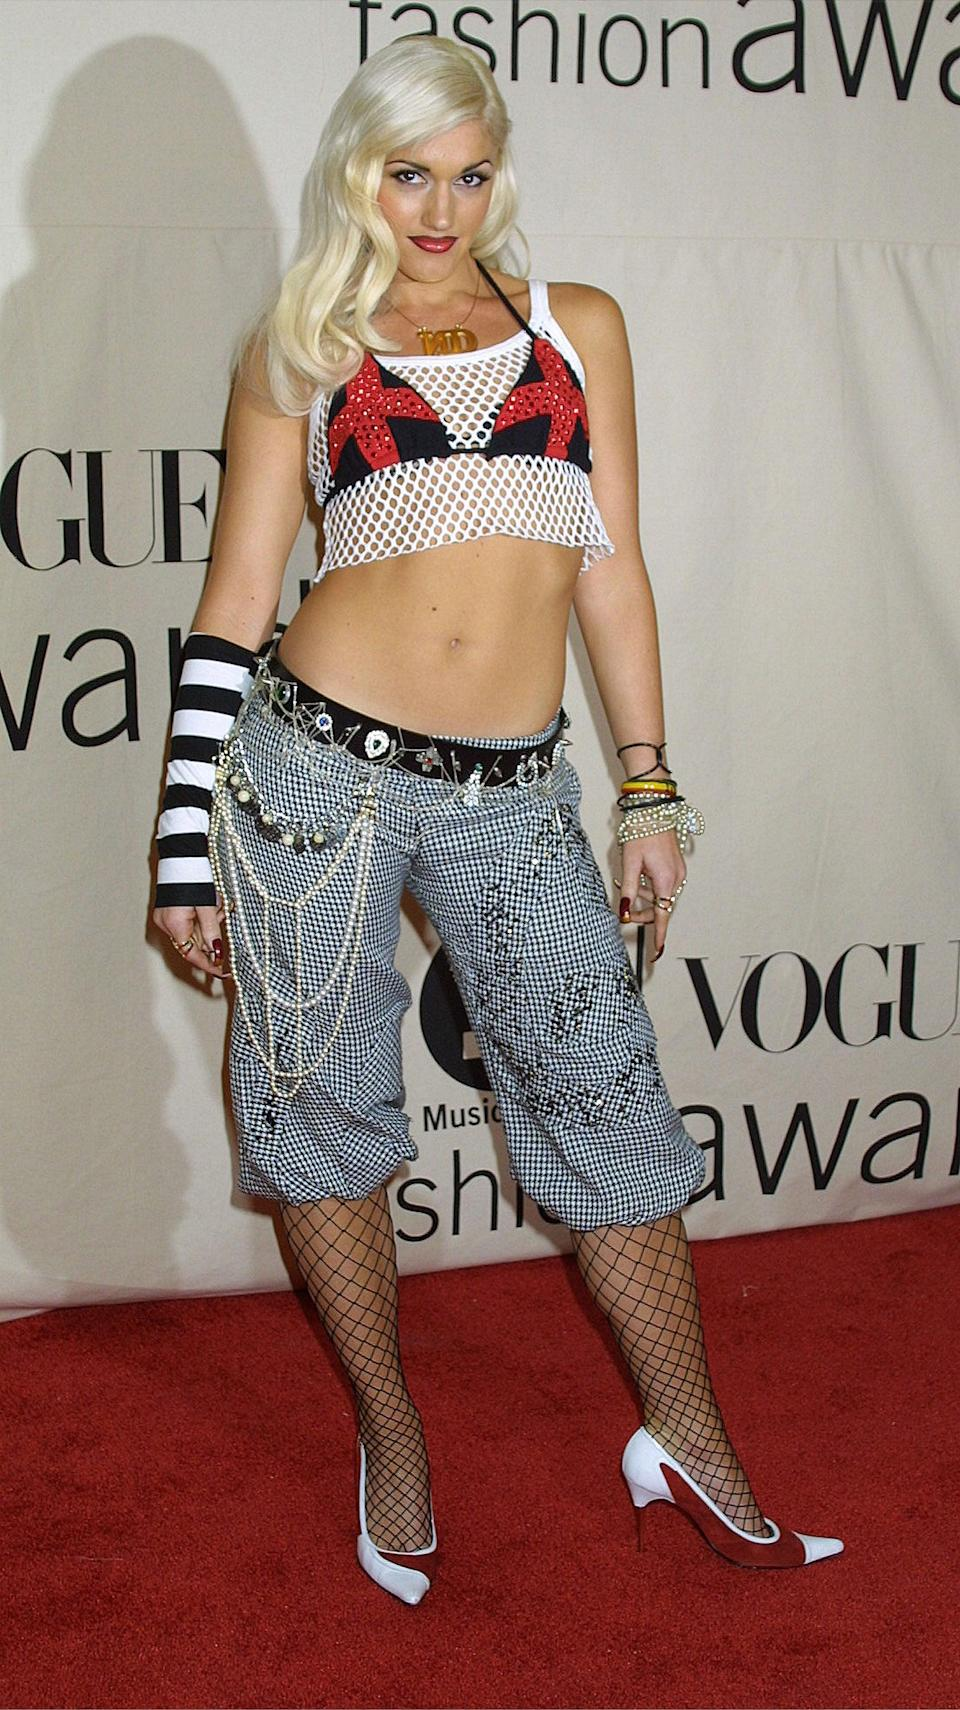 <p>Attending the 2001 VH1/<strong>Vogue</strong> Fashion Awards wearing a fishnet crop top, bikini top, and checkered board shorts.</p>